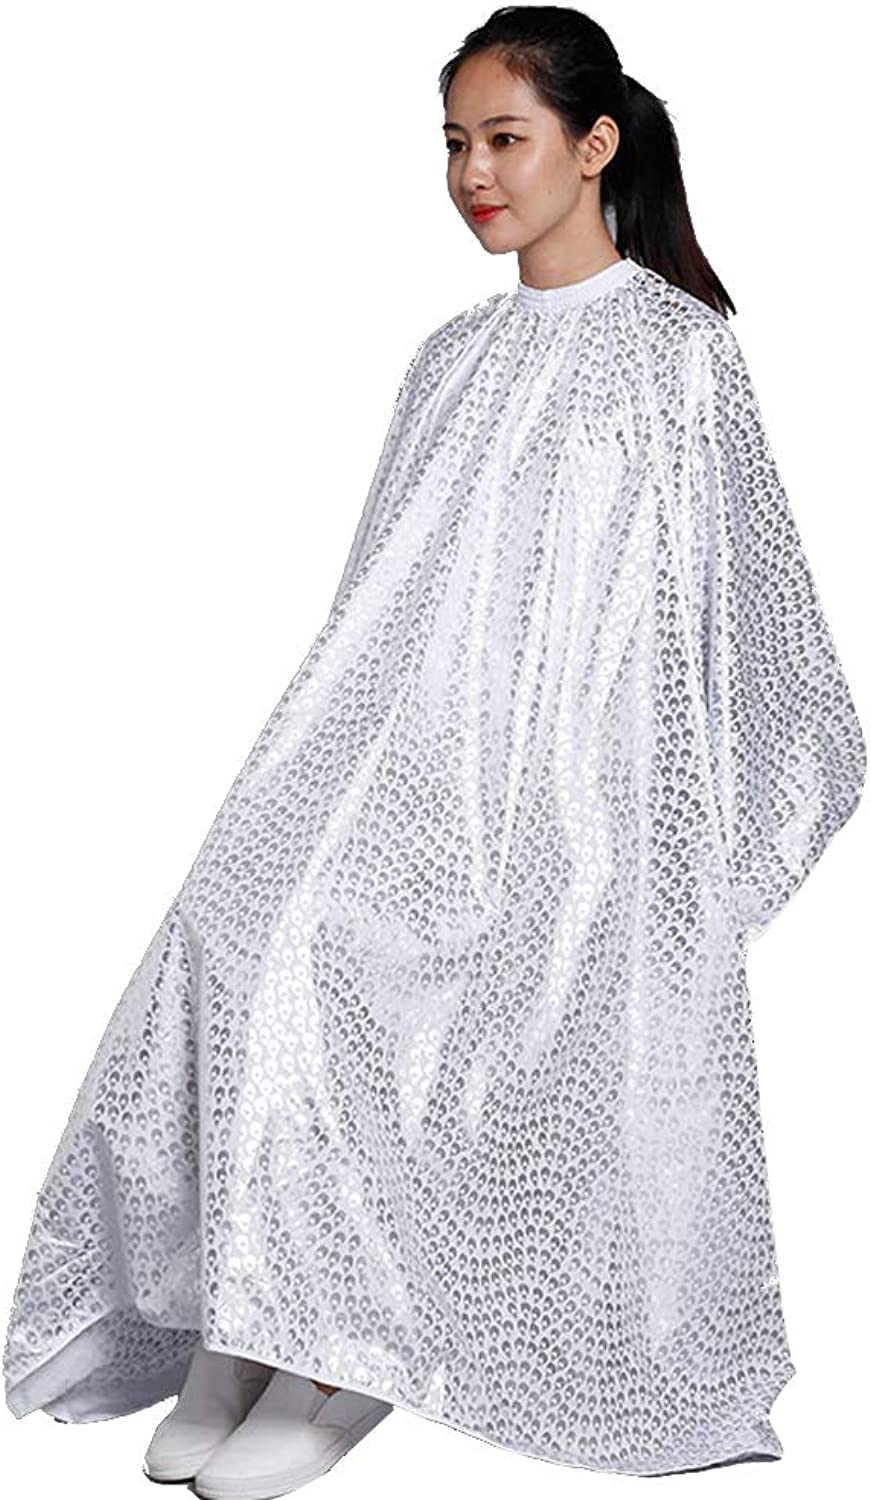 Full Length Cape Unisex Professional Hairdressers Gown for Hair Styling Cuts and Colours